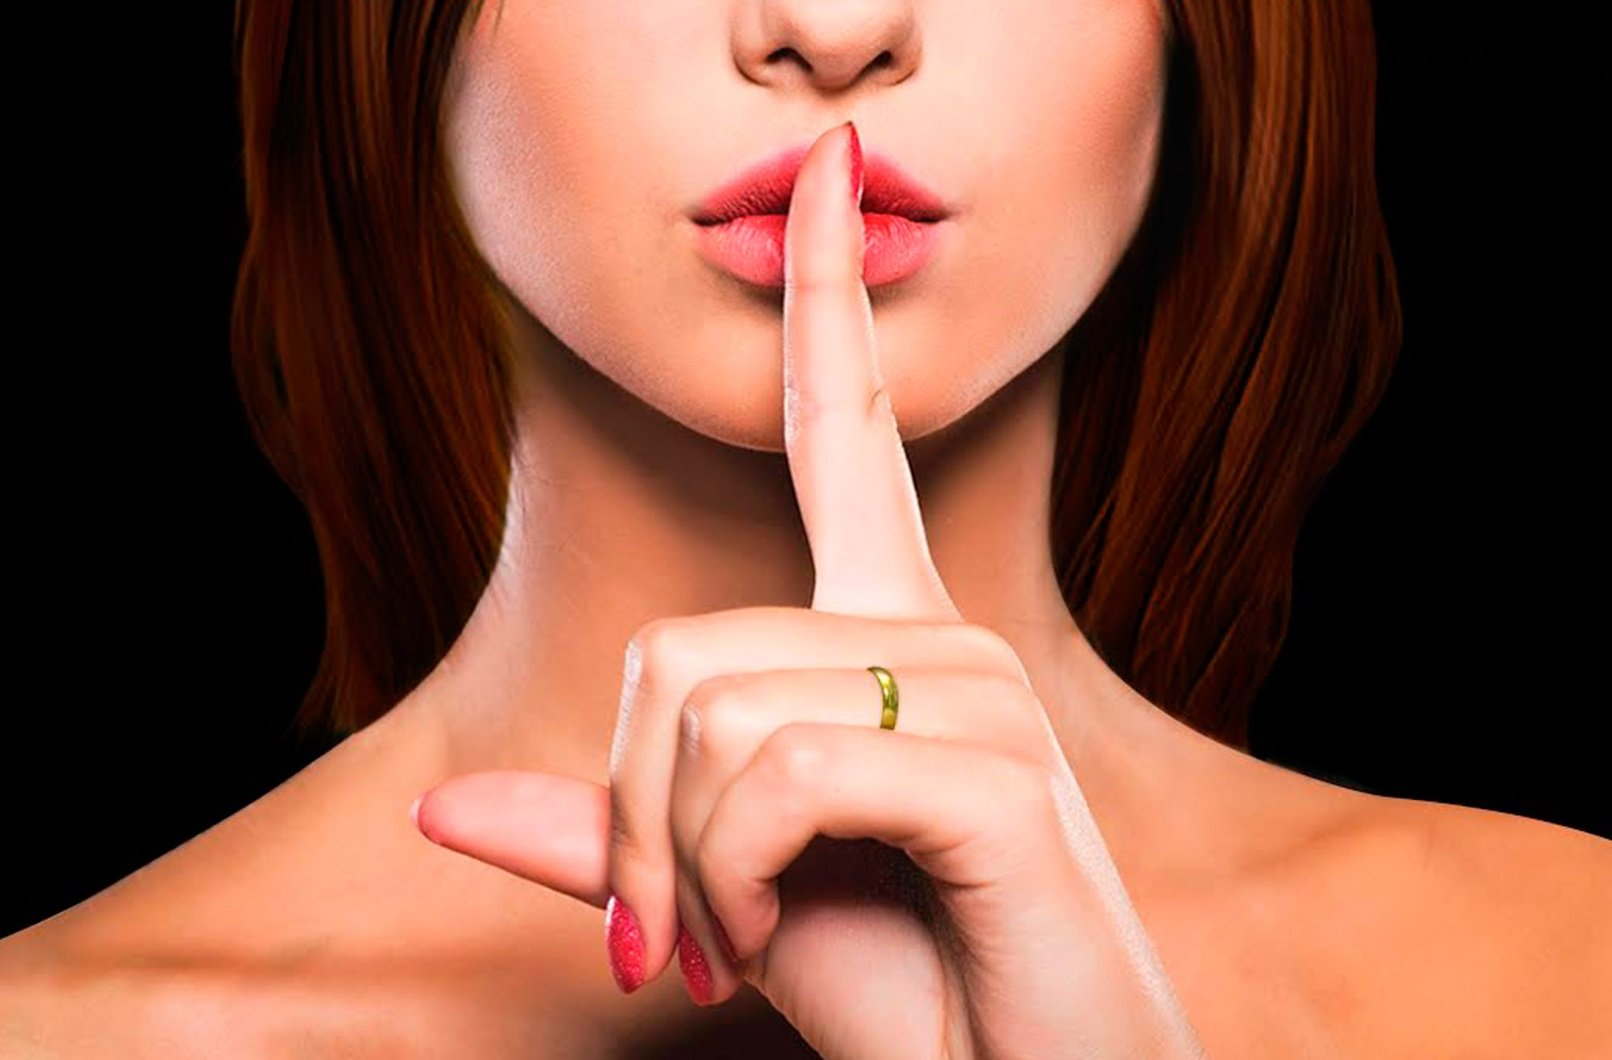 Relações extraconjugais na mira dos crimes digitais: o caso Ashley Madison